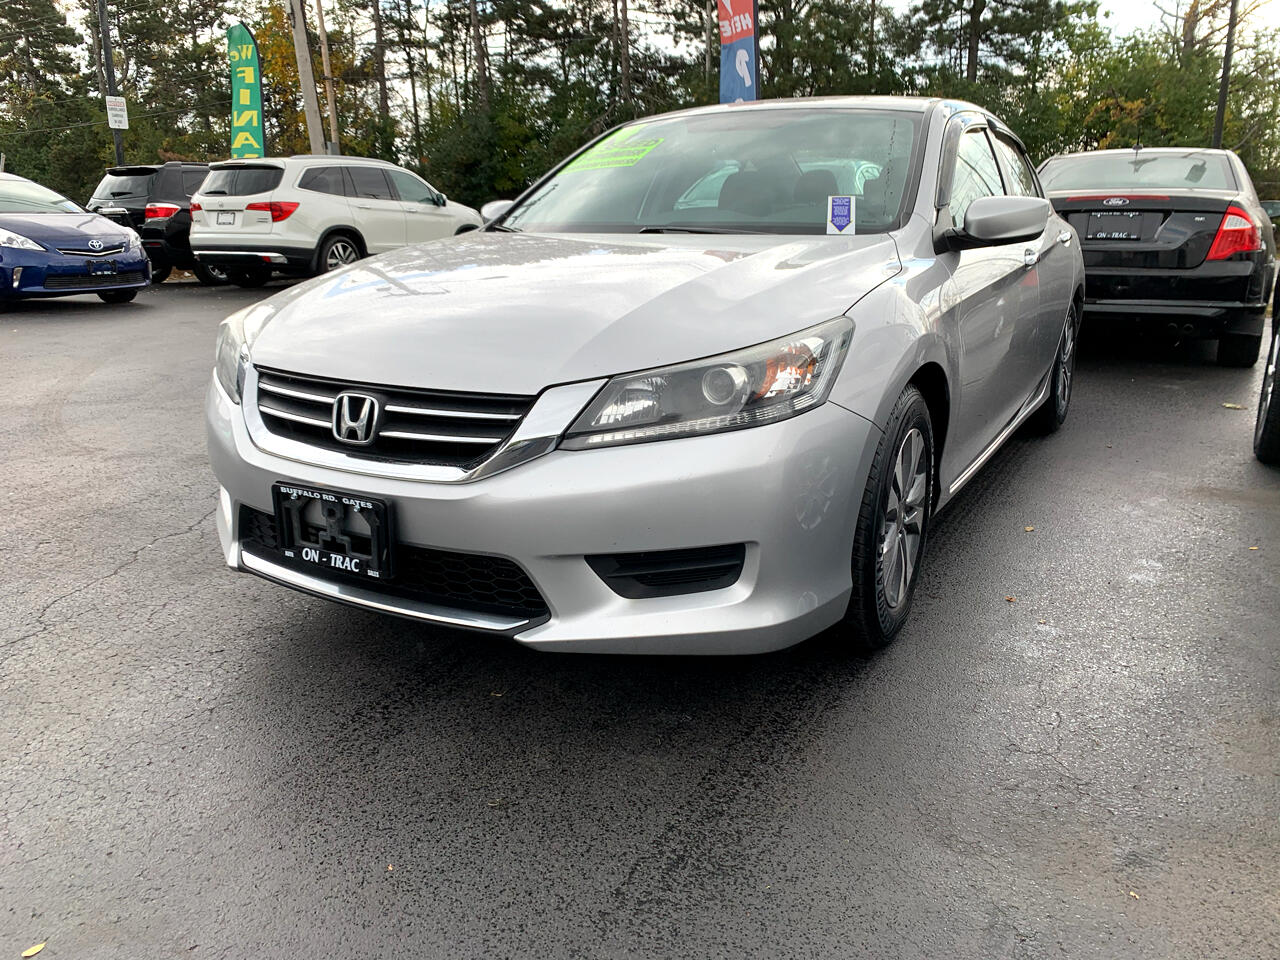 Honda Accord Sedan 4dr I4 Man LX 2014